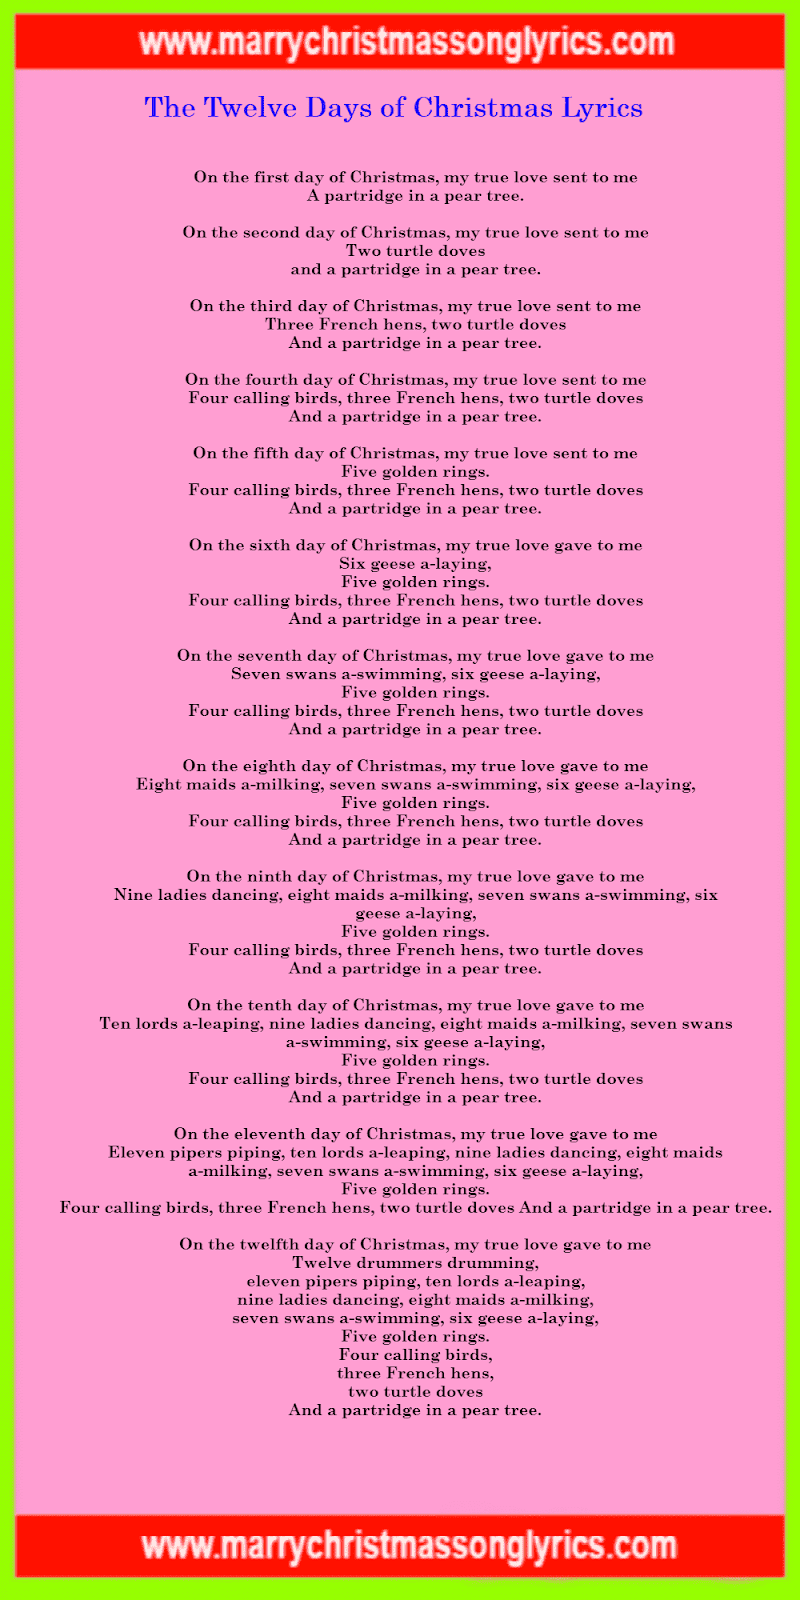 The Twelve Days of Christmas Lyrics Image